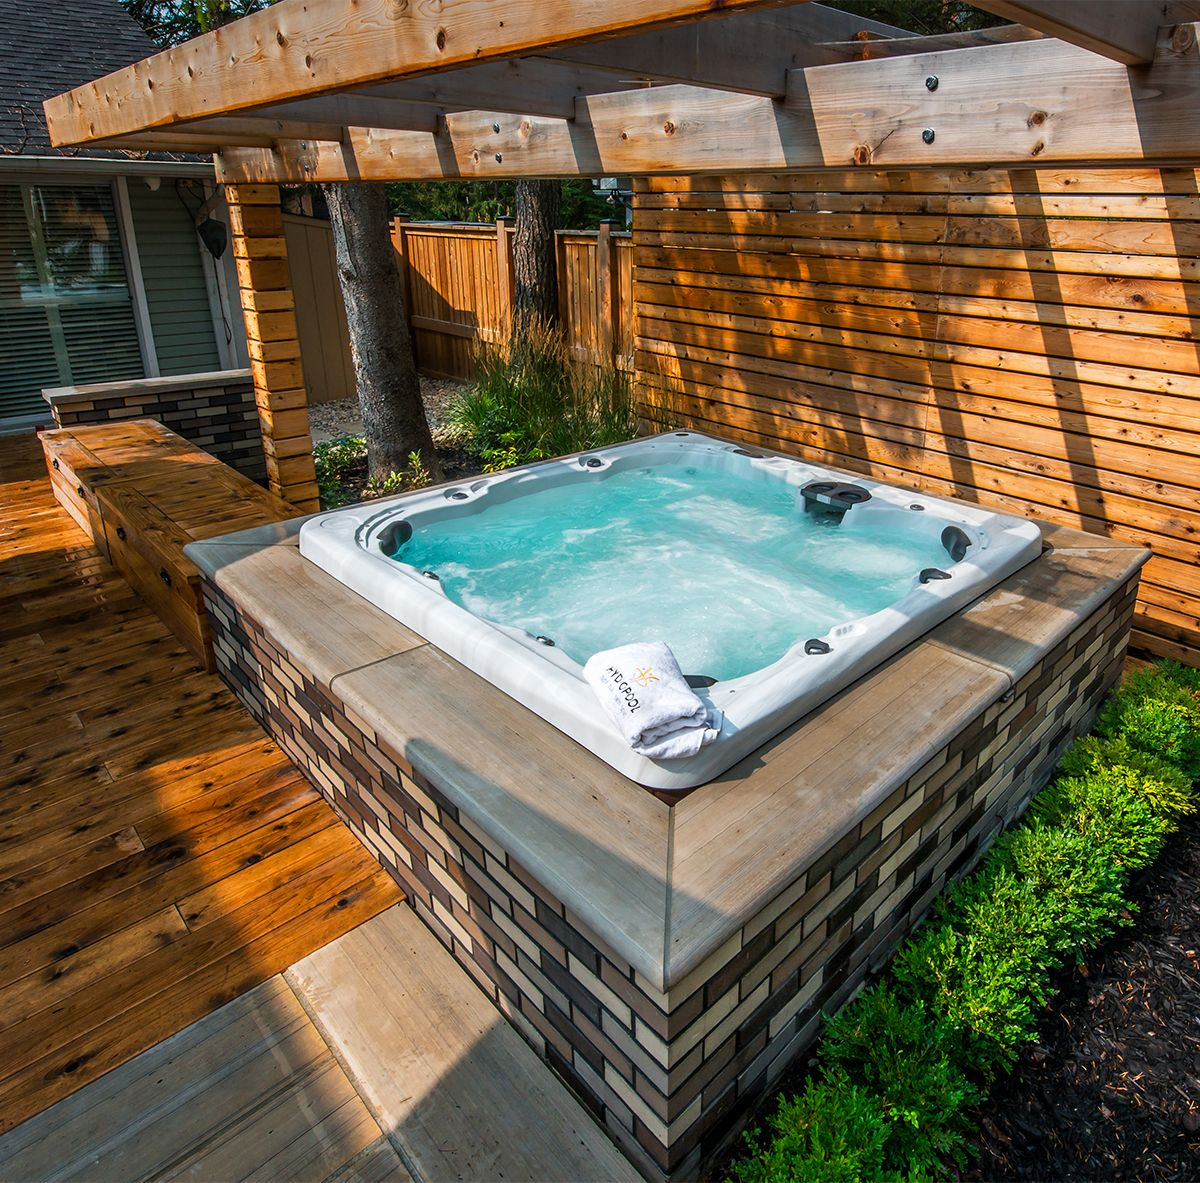 hight resolution of the wood and brick combination of this above ground hot tub install is beautifully done